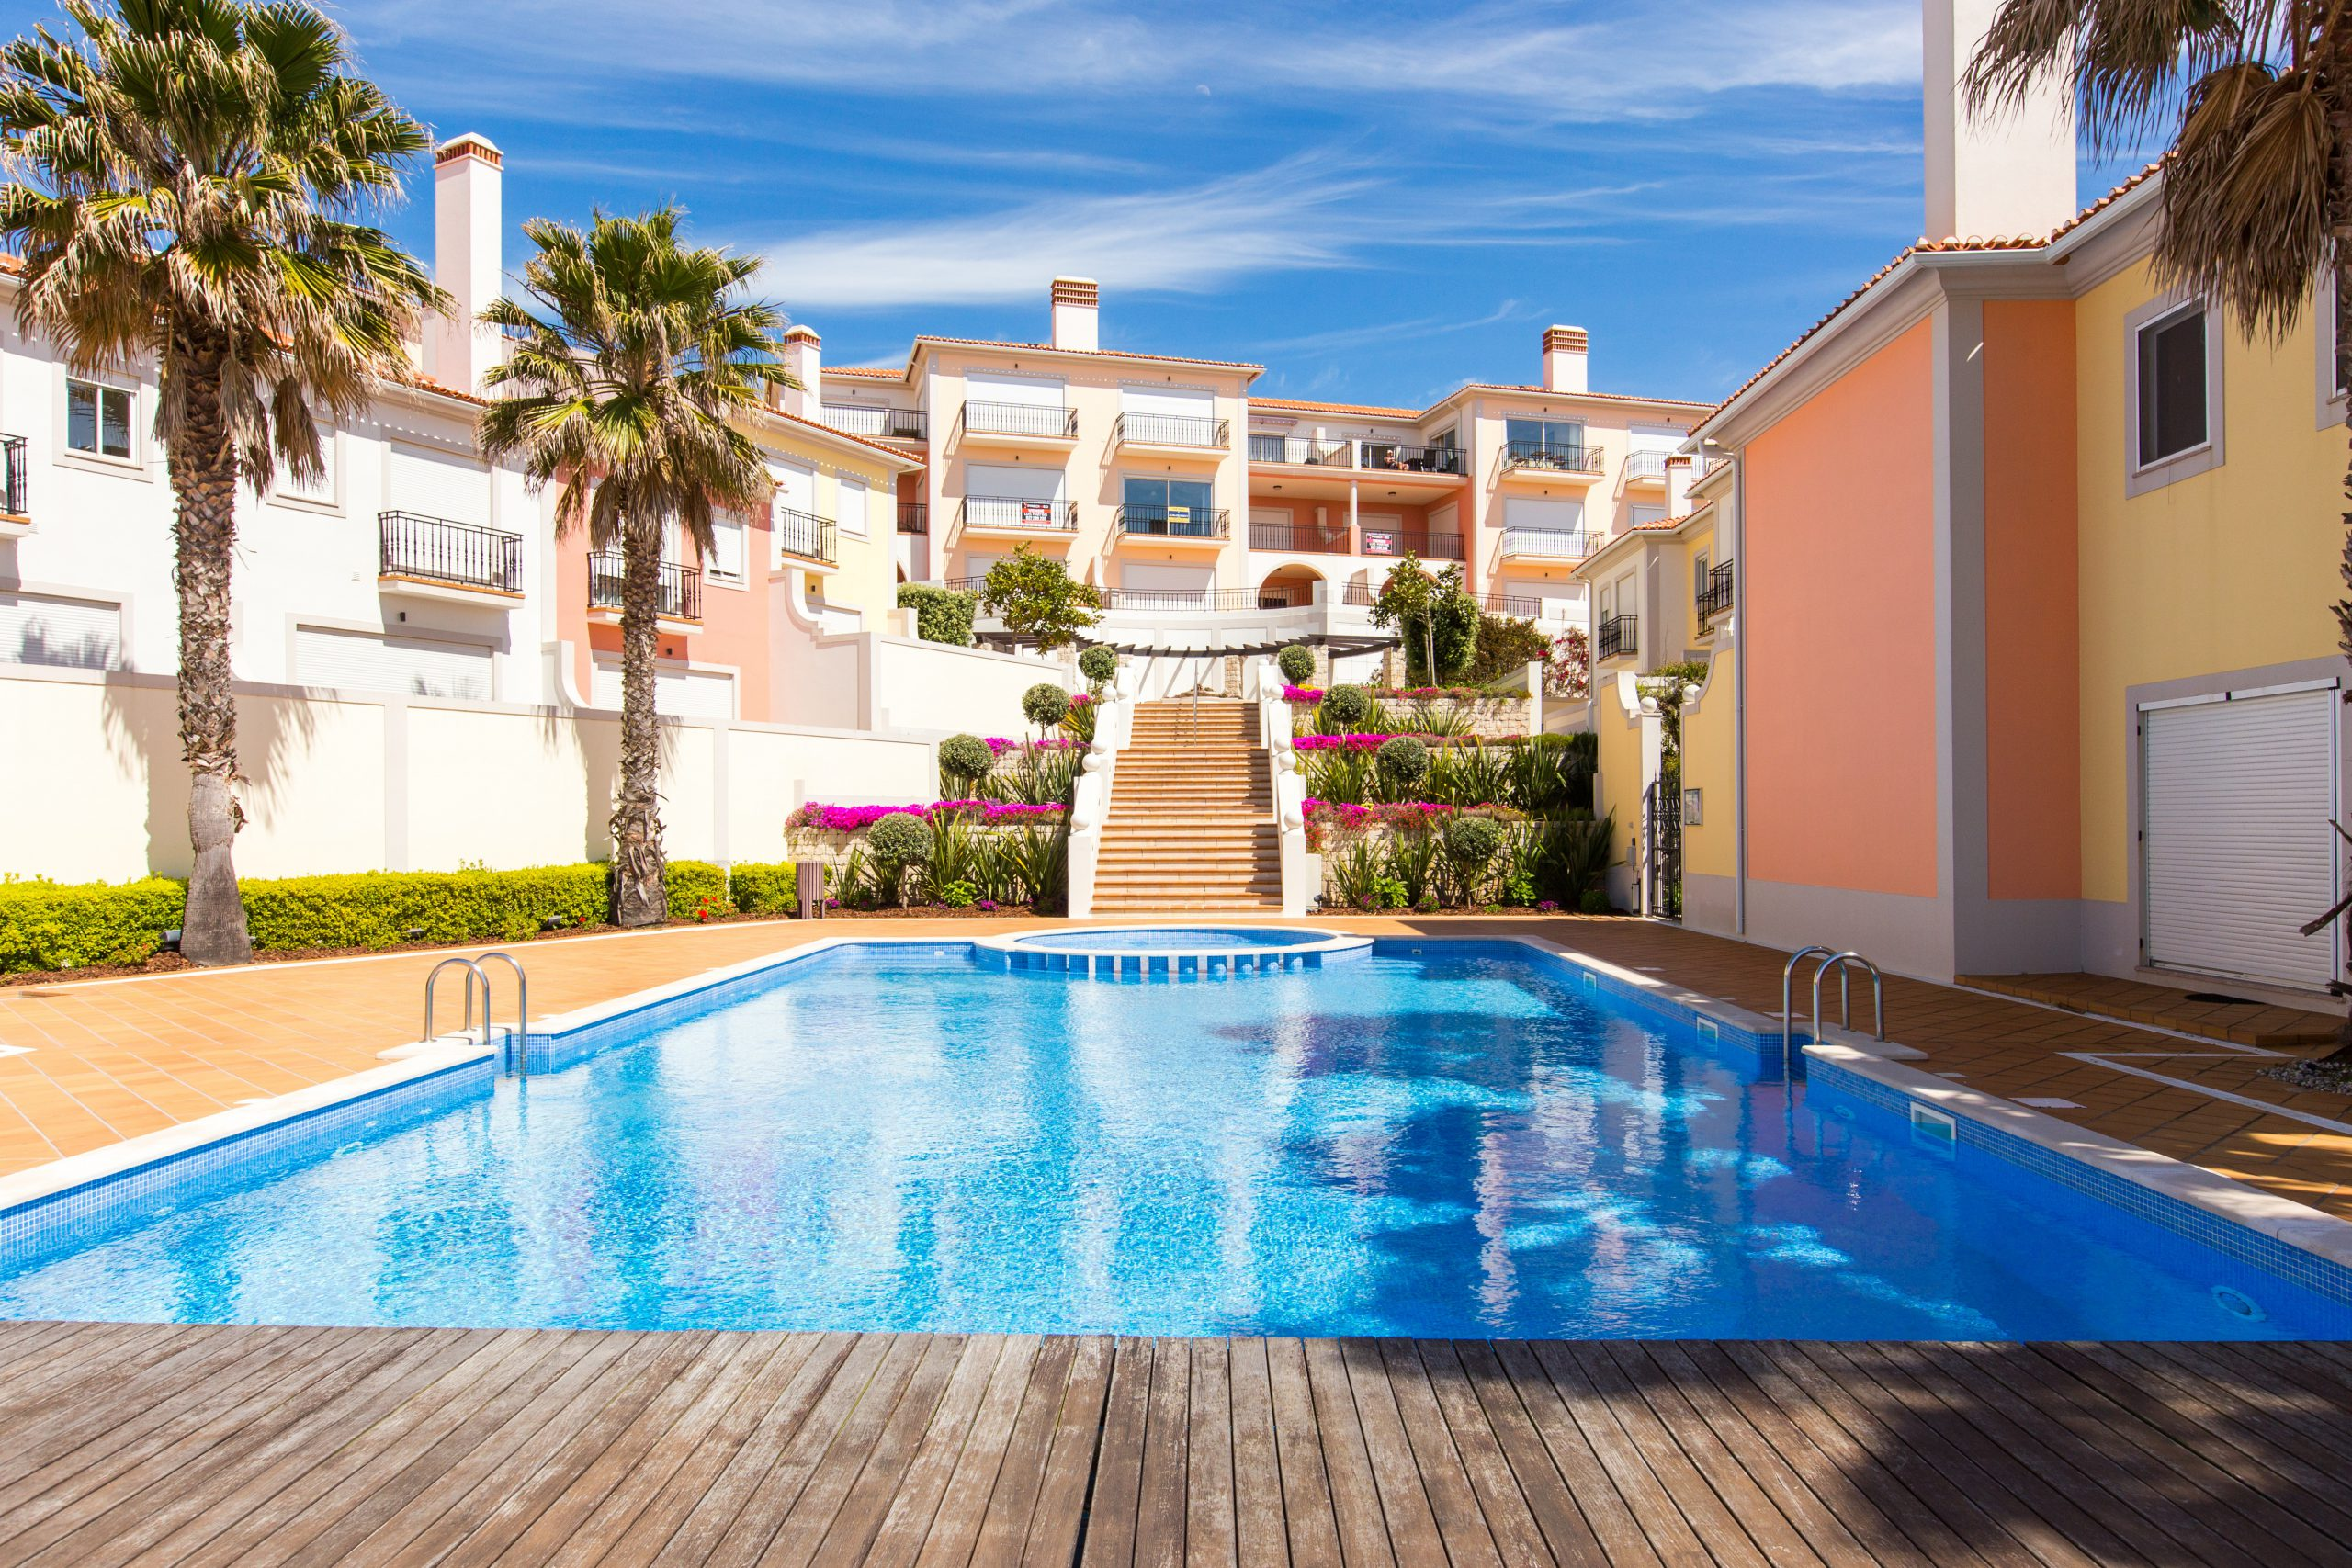 2 Bedroom Townhouse, with shared pool, 2 minutes from the beach